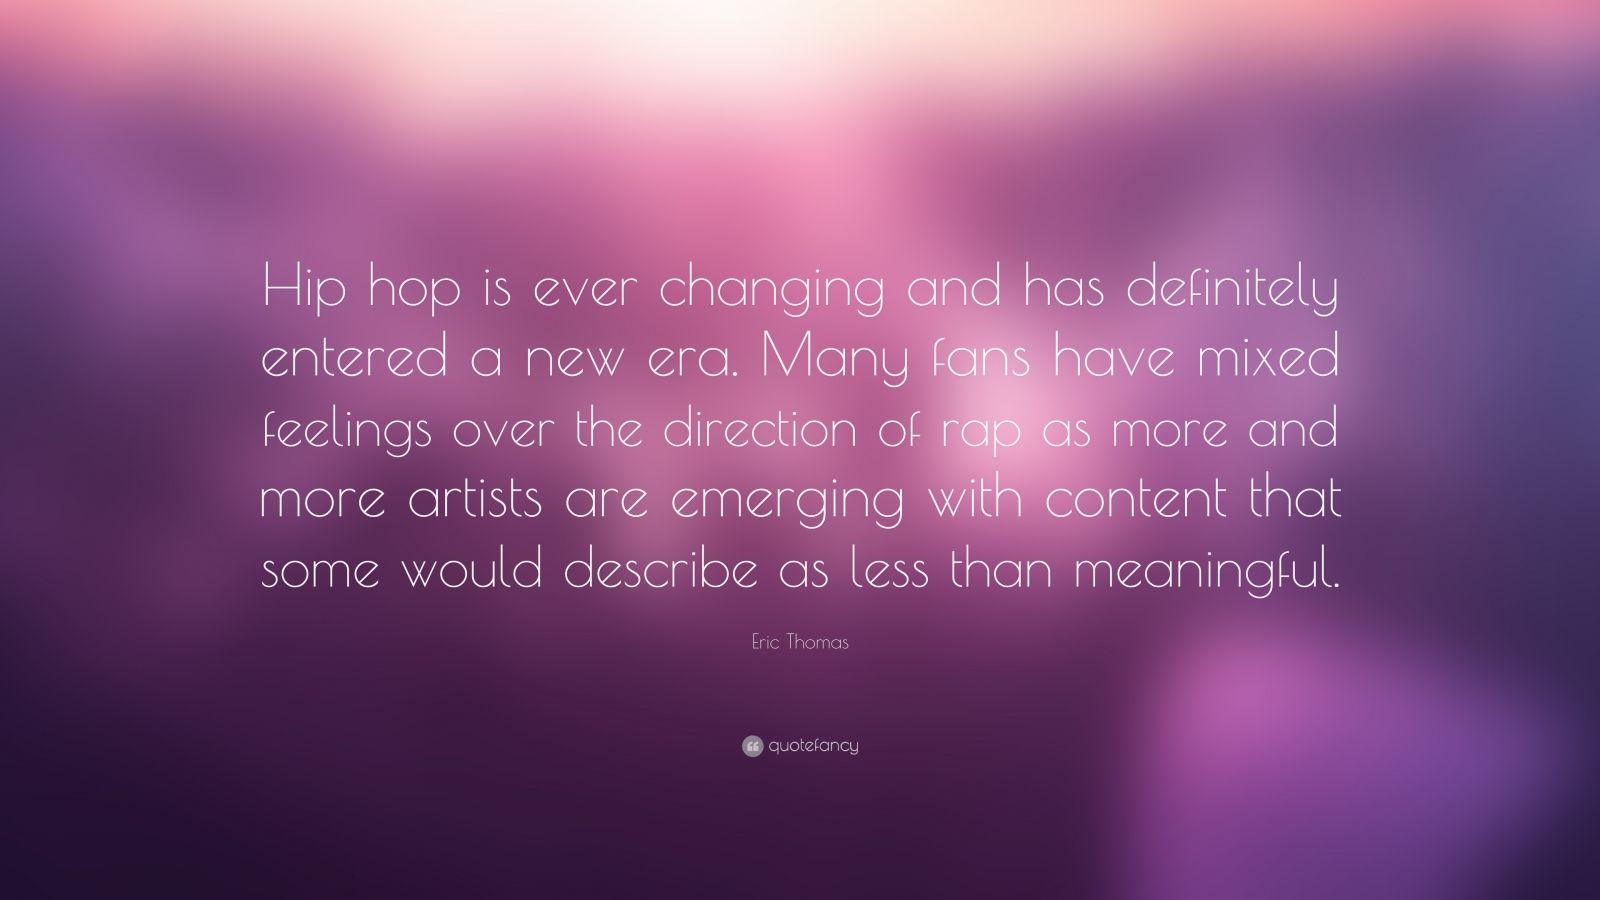 "Eric Thomas Quote: ""Hip hop is ever changing and has definitely entered a new era. Many fans have mixed feelings over the direction of rap as more and more artists are emerging with content that some would describe as less than meaningful."""